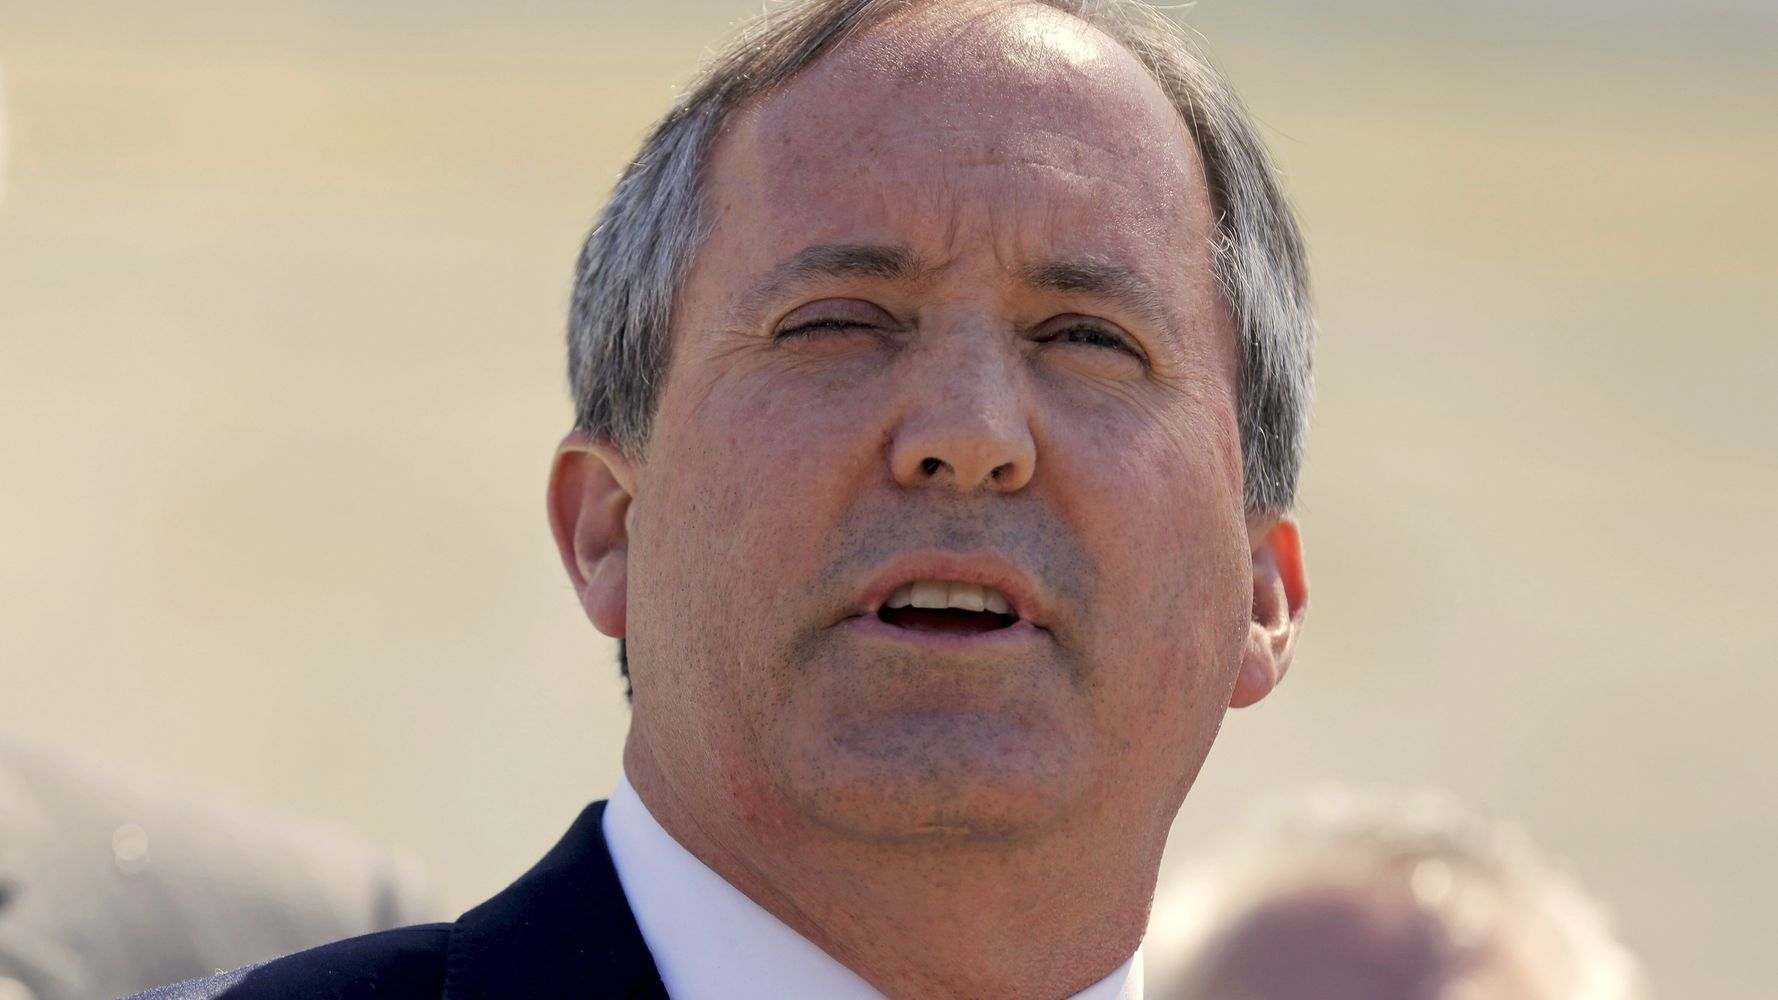 Texas Attorney General's Affair Tied To Criminal Allegations: AP